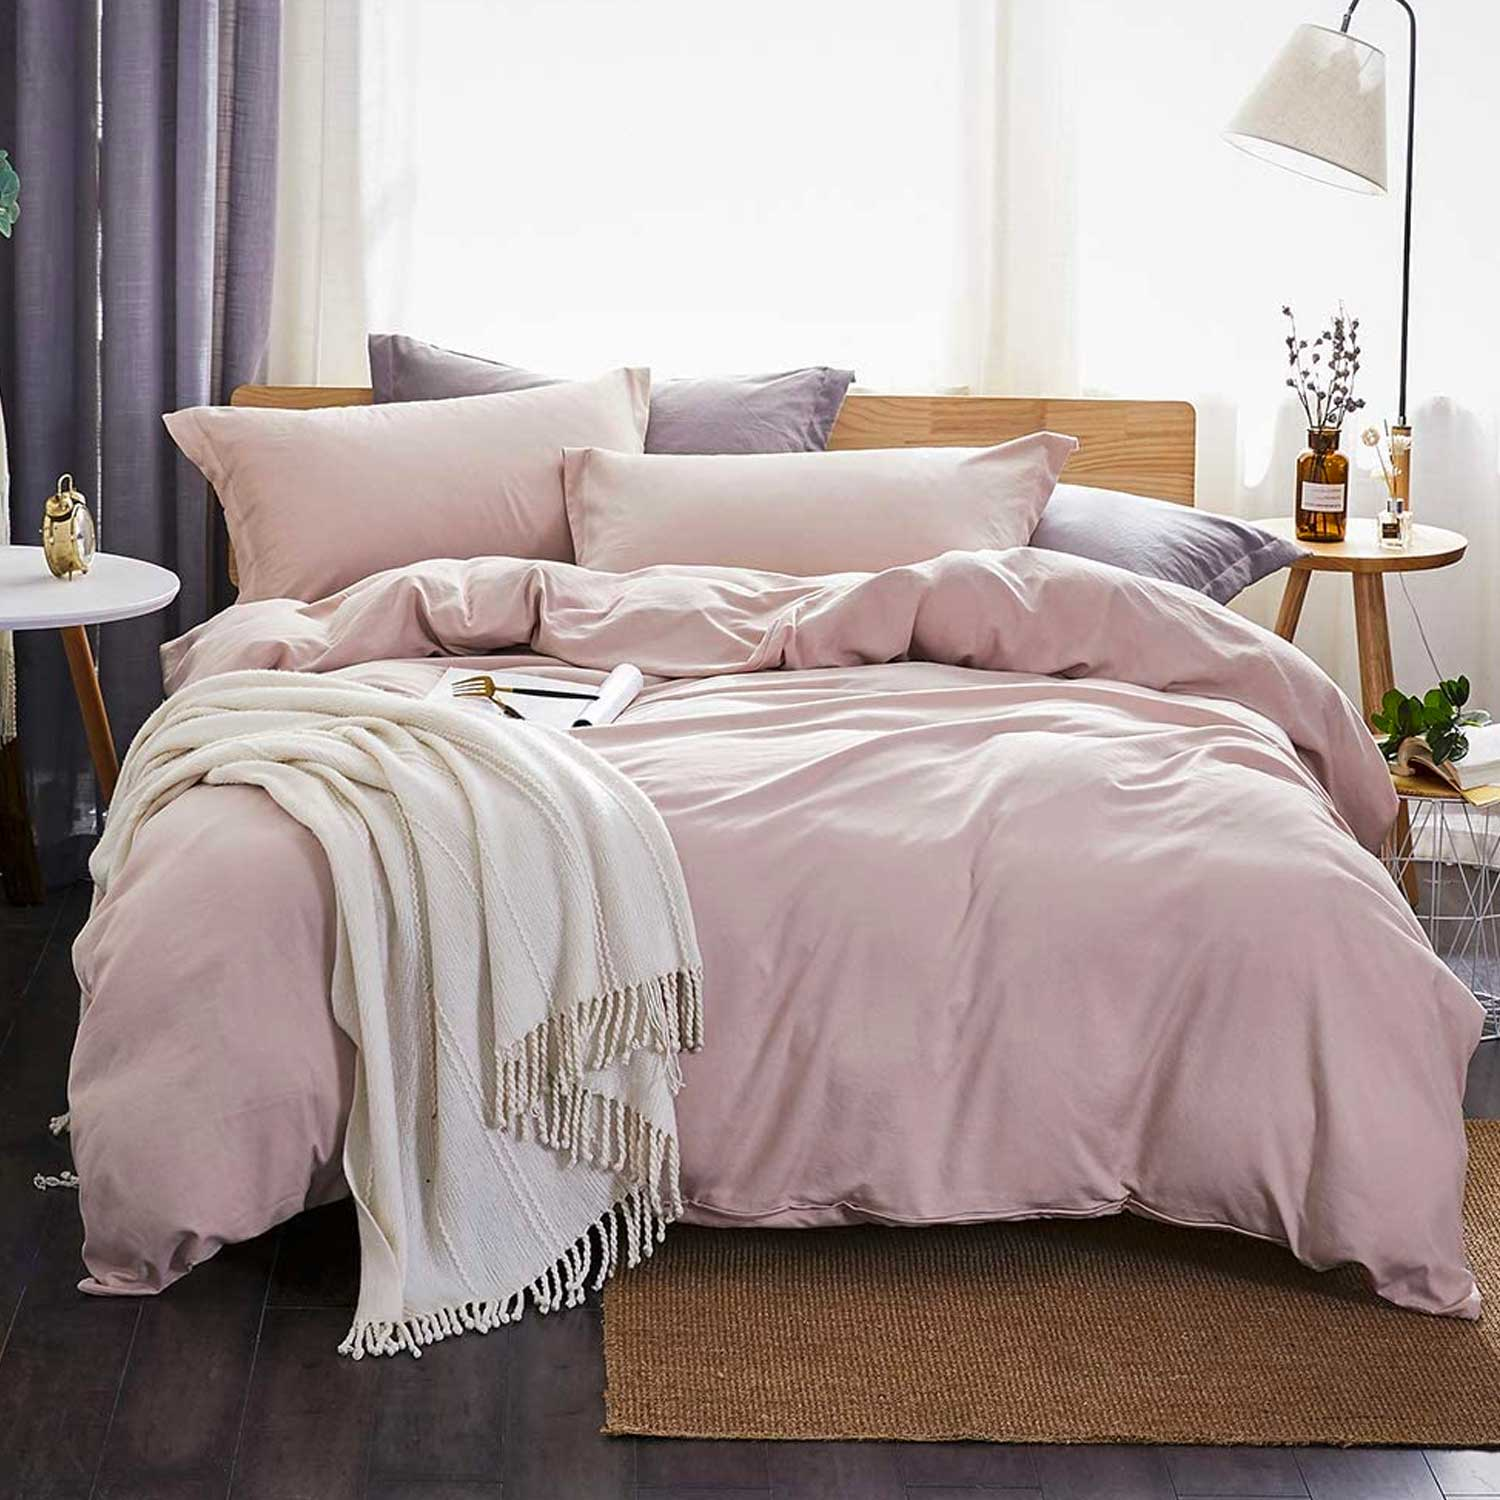 Dreaming Wapiti Duvet Cover Queen,100% Washed Microfiber 3pcs Bedding Duvet Cover Set,Solid Color Soft and Breathable with Zipper Closure & Corner Ties